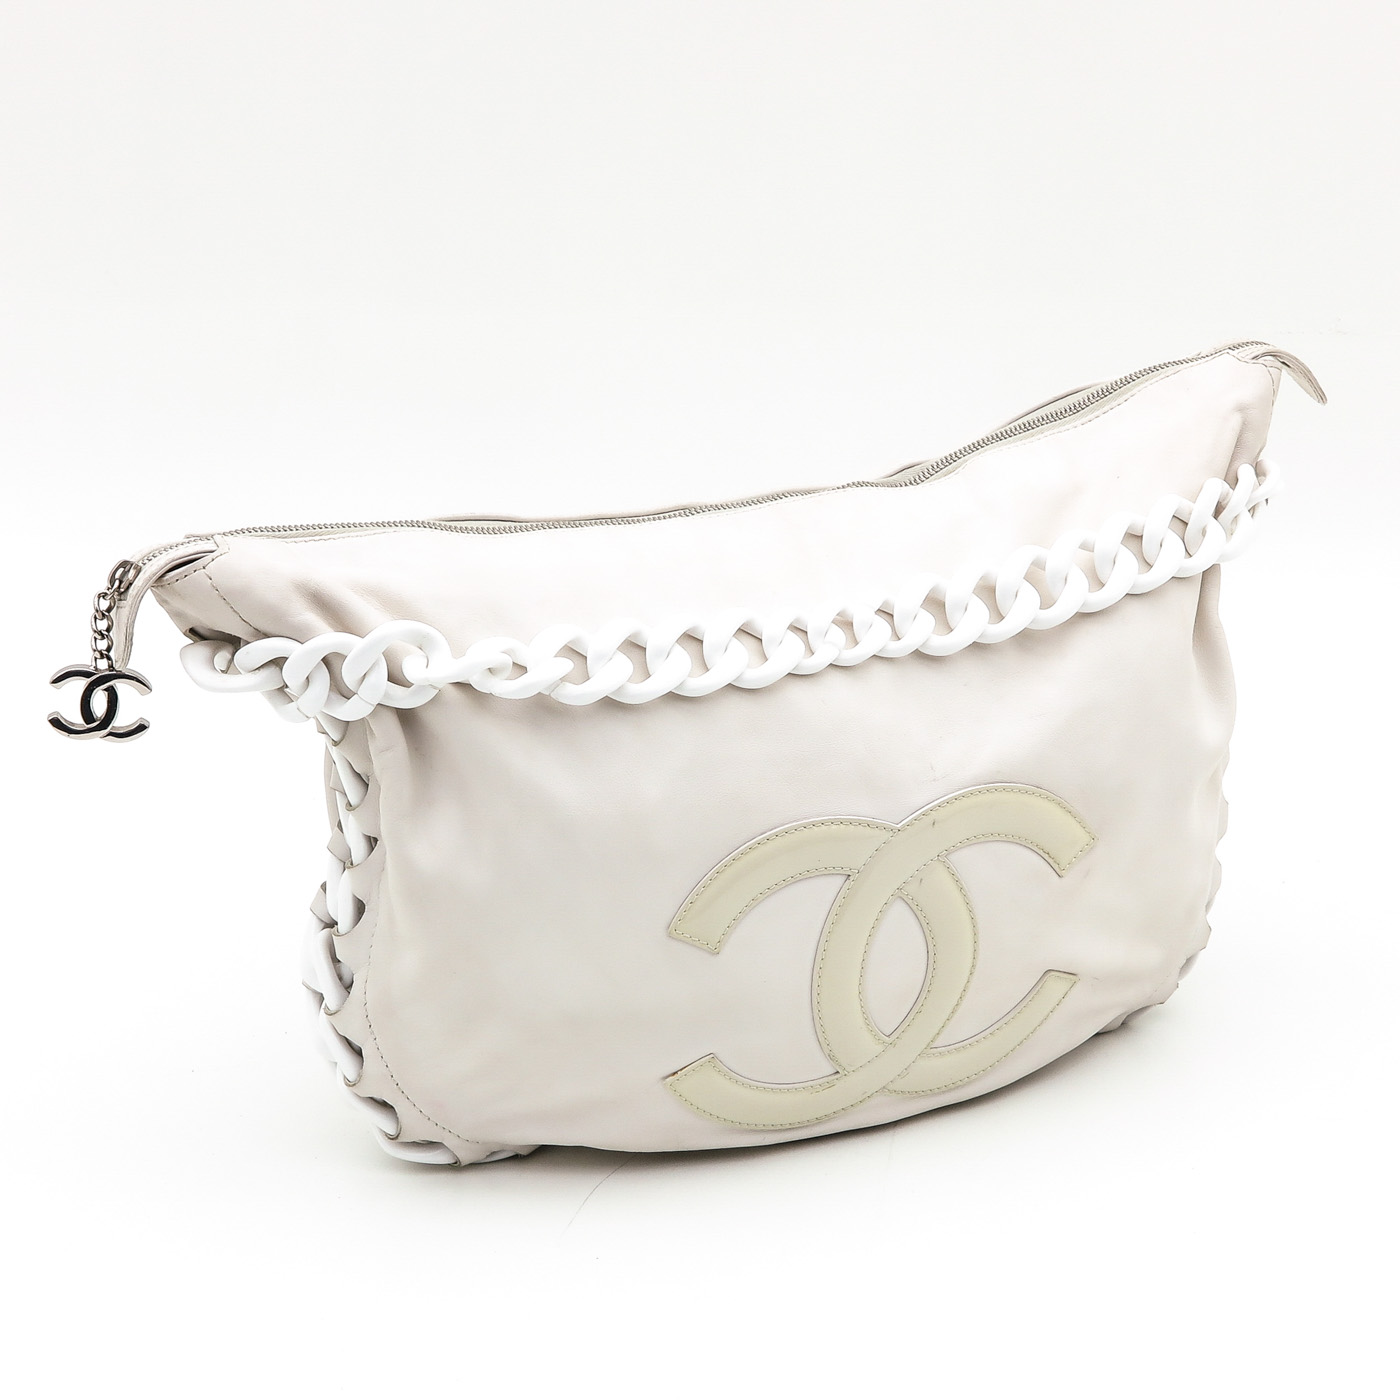 Lot 1253 - A Chanel Ladies Bag